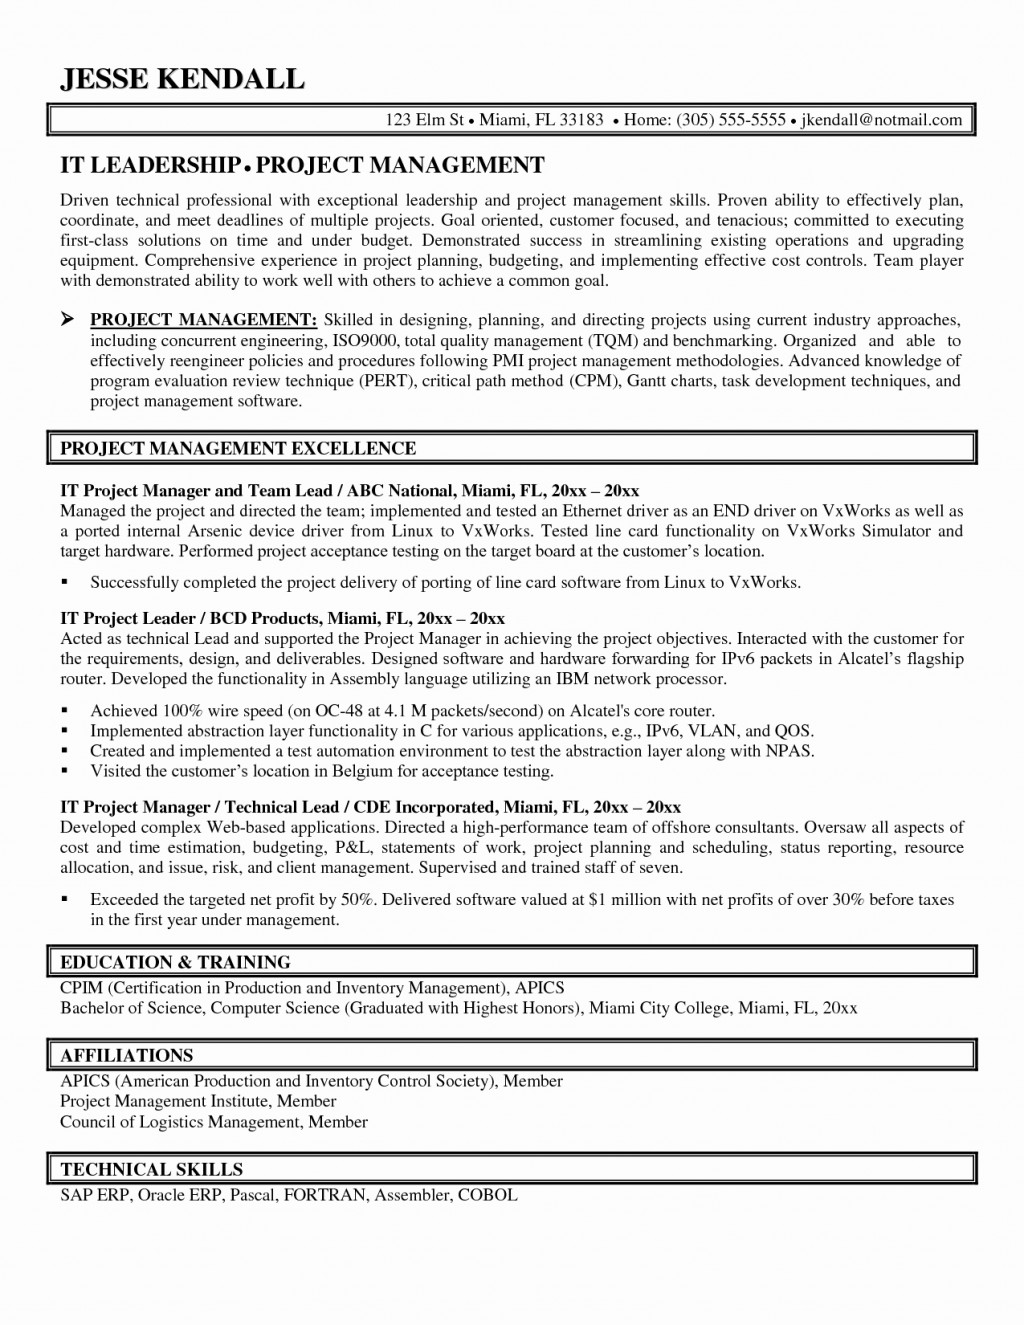 013 Leadership Goals And Objectives Examples The Best Of Shoes Writing An Informative Essay About Making Sacrifices Quizlet Awesome Sample Resume Forhnicalad Prewriting Activity Example Breathtaking Lead Exposure Generator Large